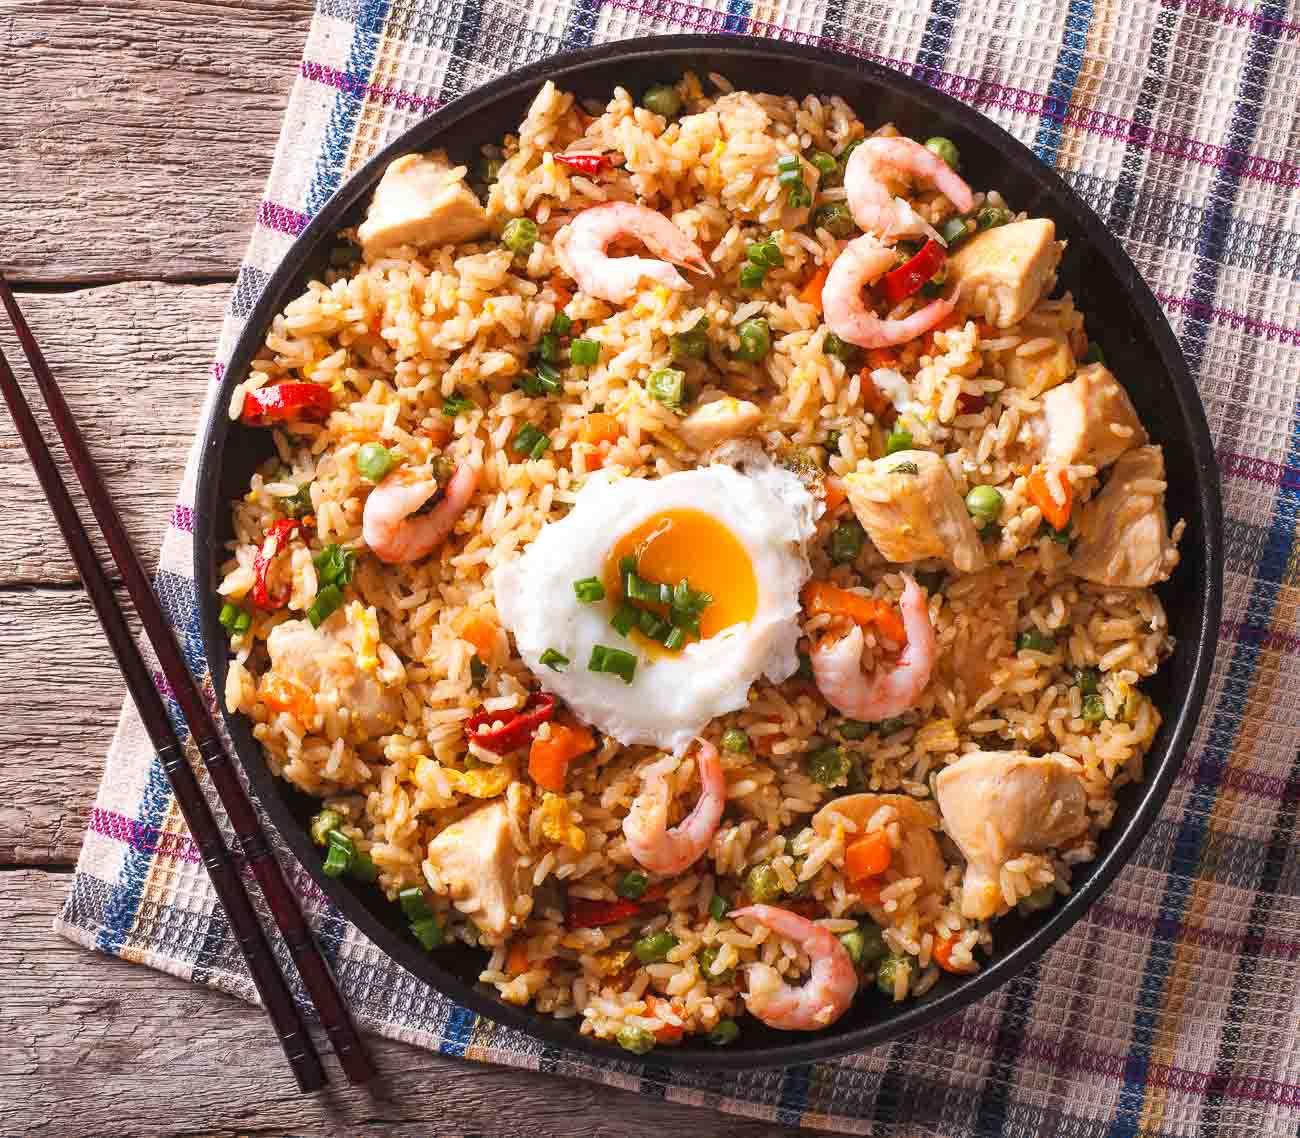 Prawn and chicken fried rice recipe by archanas kitchen indo chinese prawn and chicken fried rice recipe ccuart Choice Image